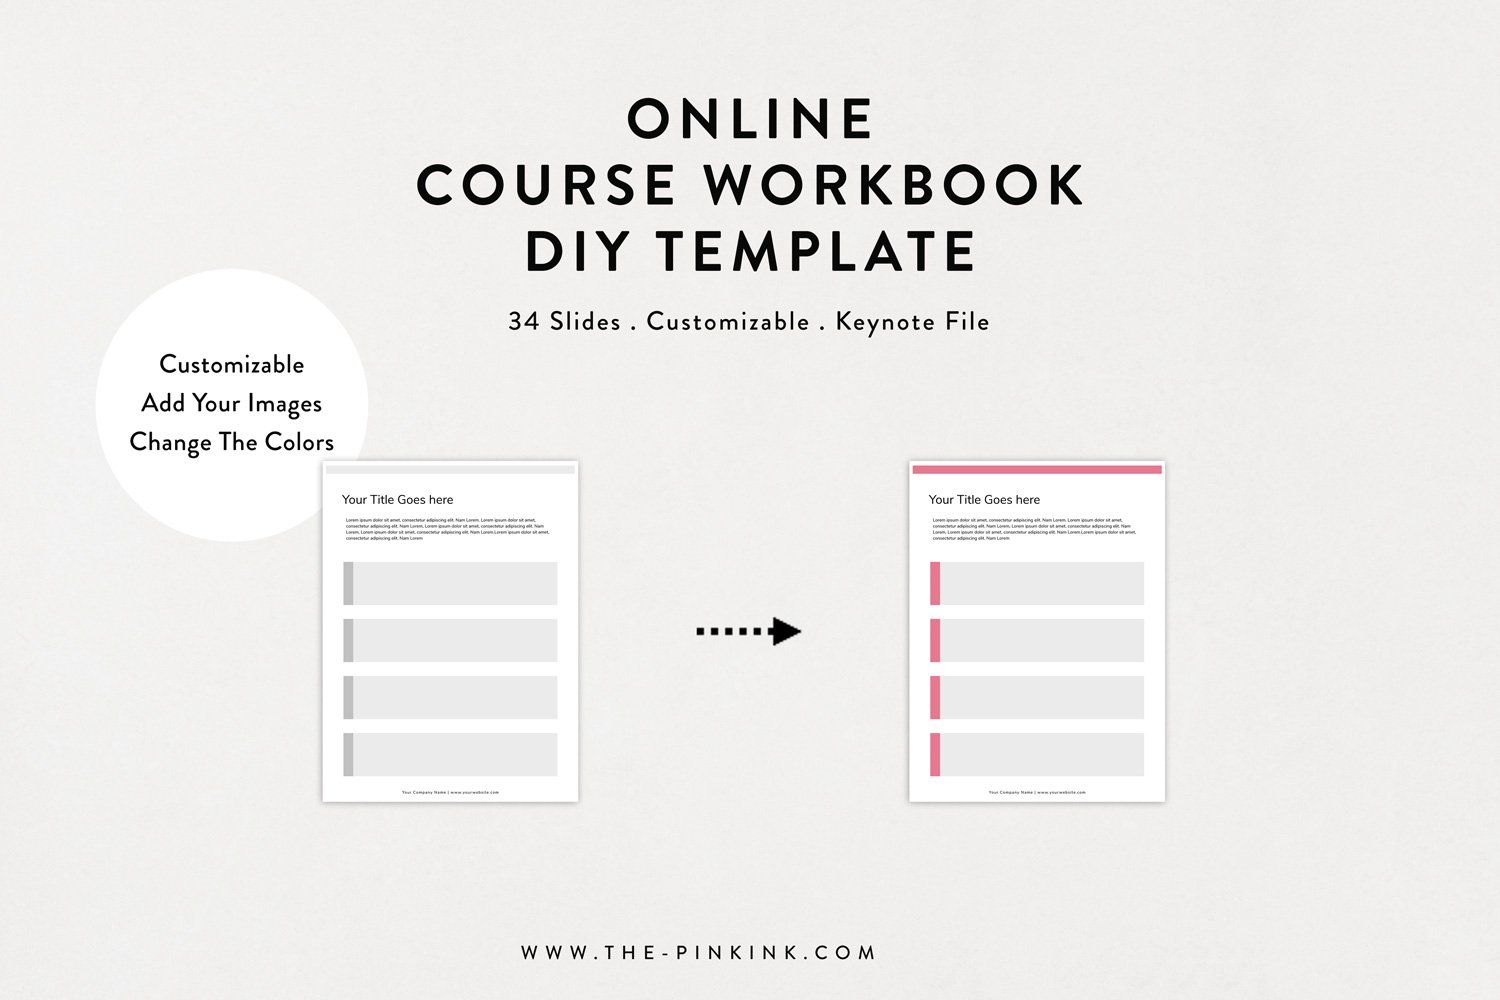 Online Course Workbook DIY Template (With images